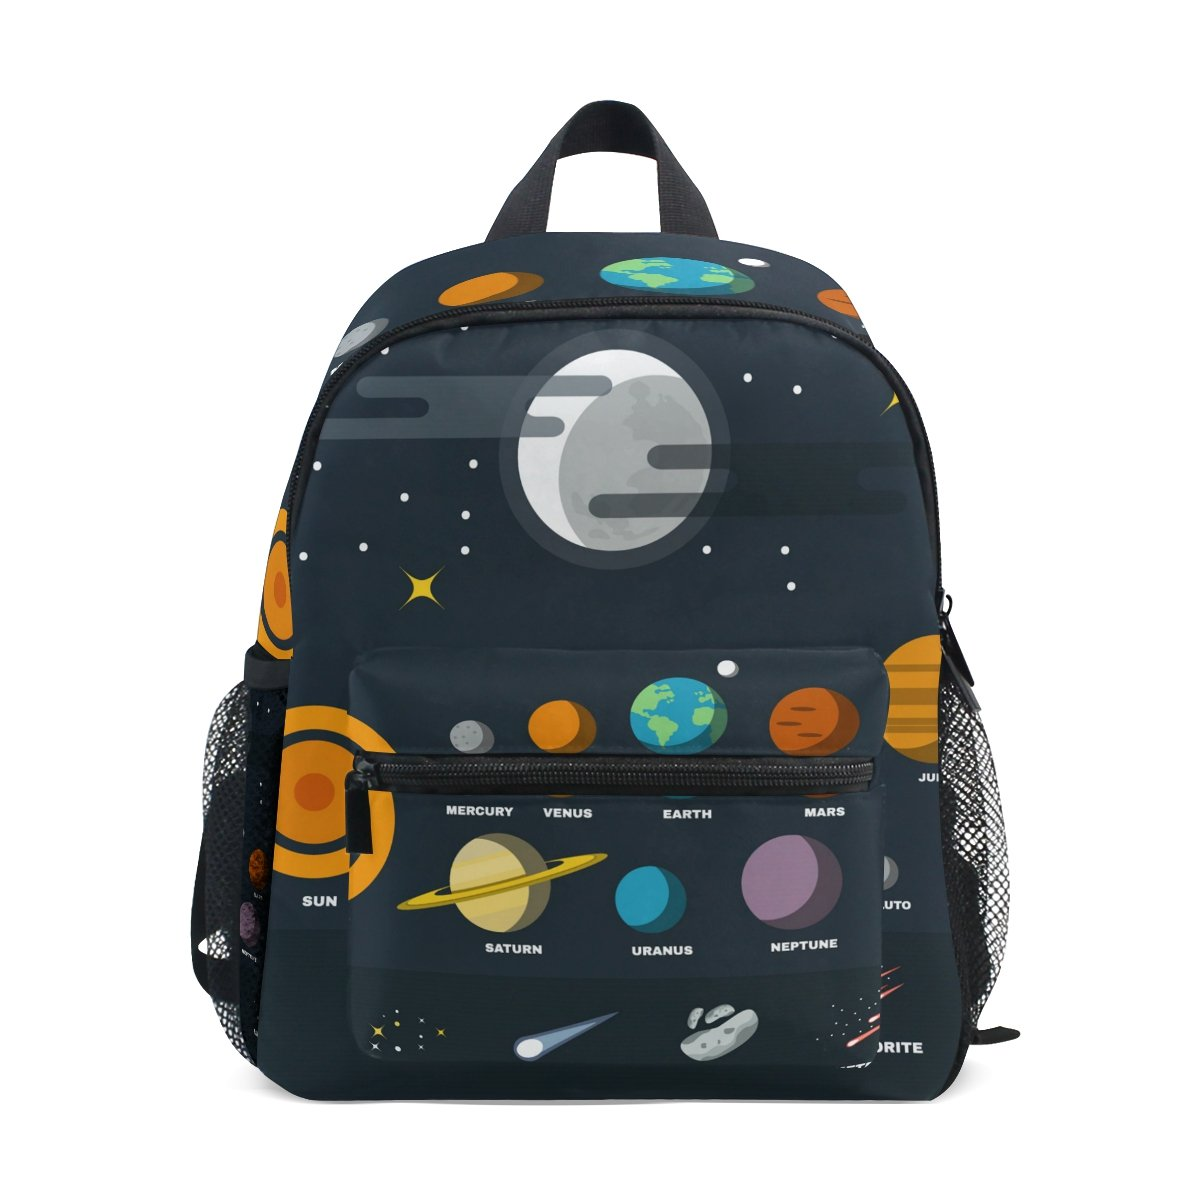 ISAOA 3D Printed Solar System Kids Backpacks Kindergarten Preschool Toddler Boys/Girls Bookbag Cute Schoolbags for Age 2-8 Child sjb-007